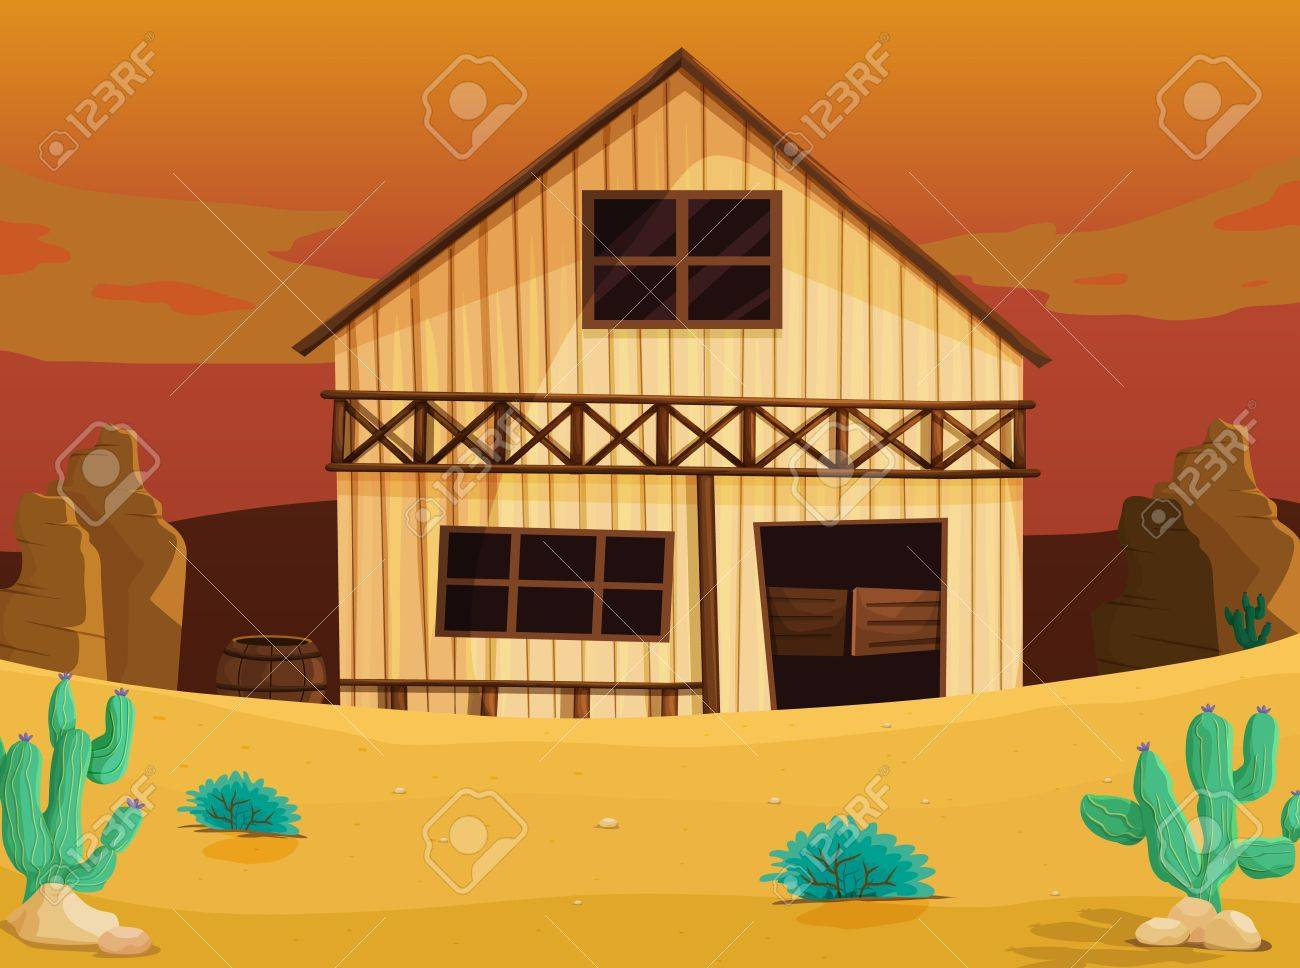 illustration of a house on a white background Stock Vector - 14887573